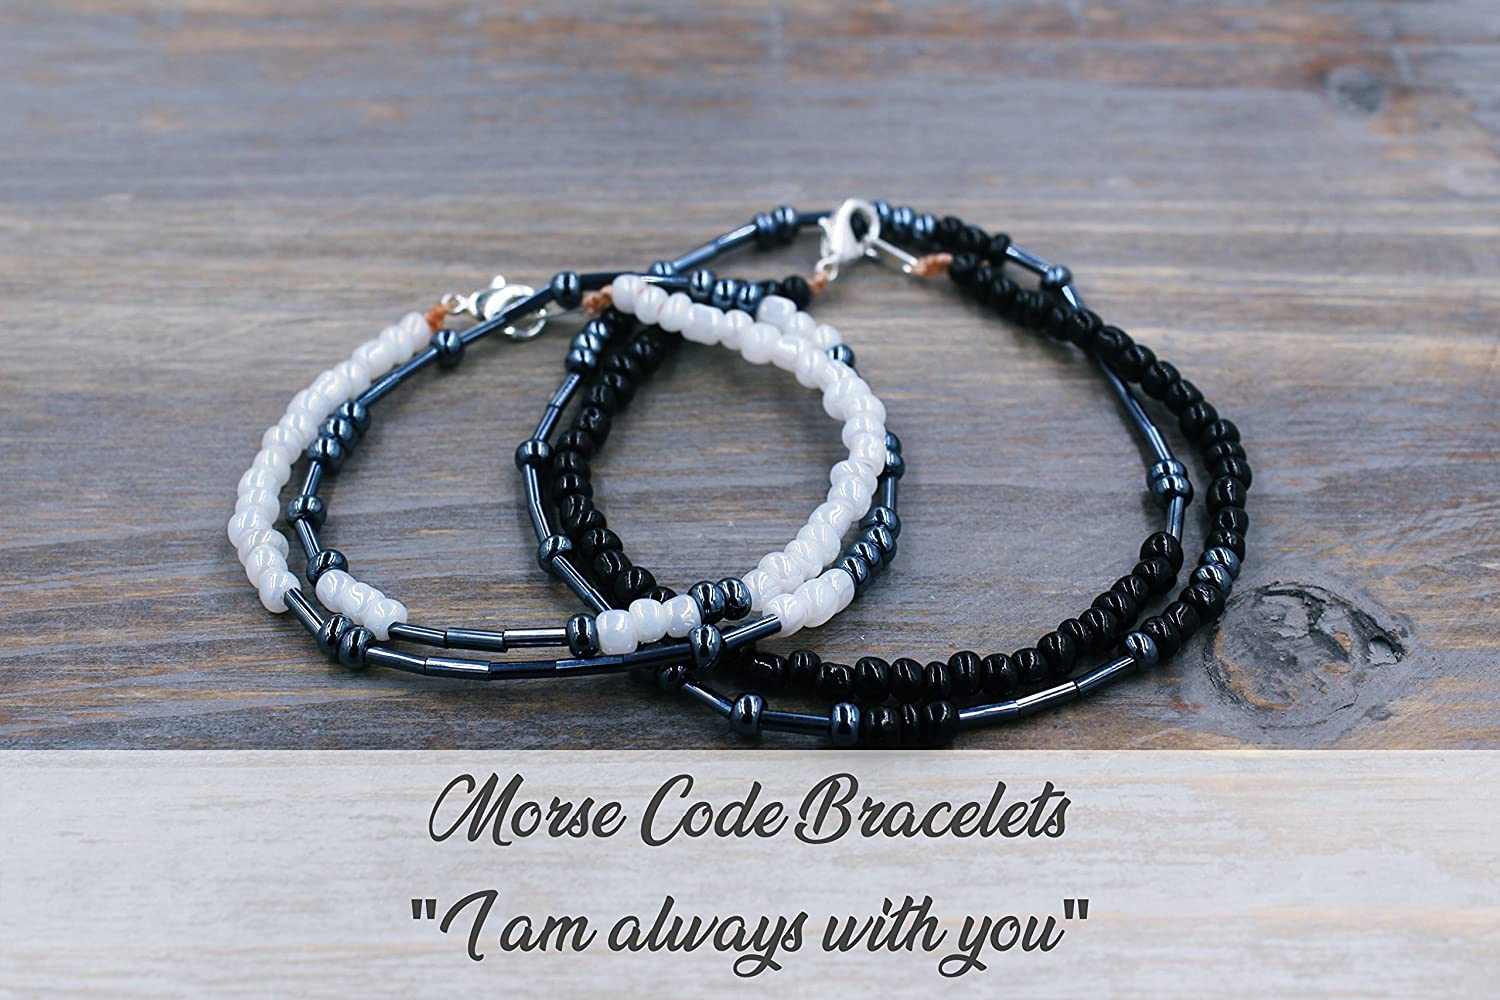 Matching Bracelets for Couples - Long Distance Relationship Gifts for Couples - Matching Boyfriend Girlfriend Jewelry - Matching Couples Gifts I am always with you